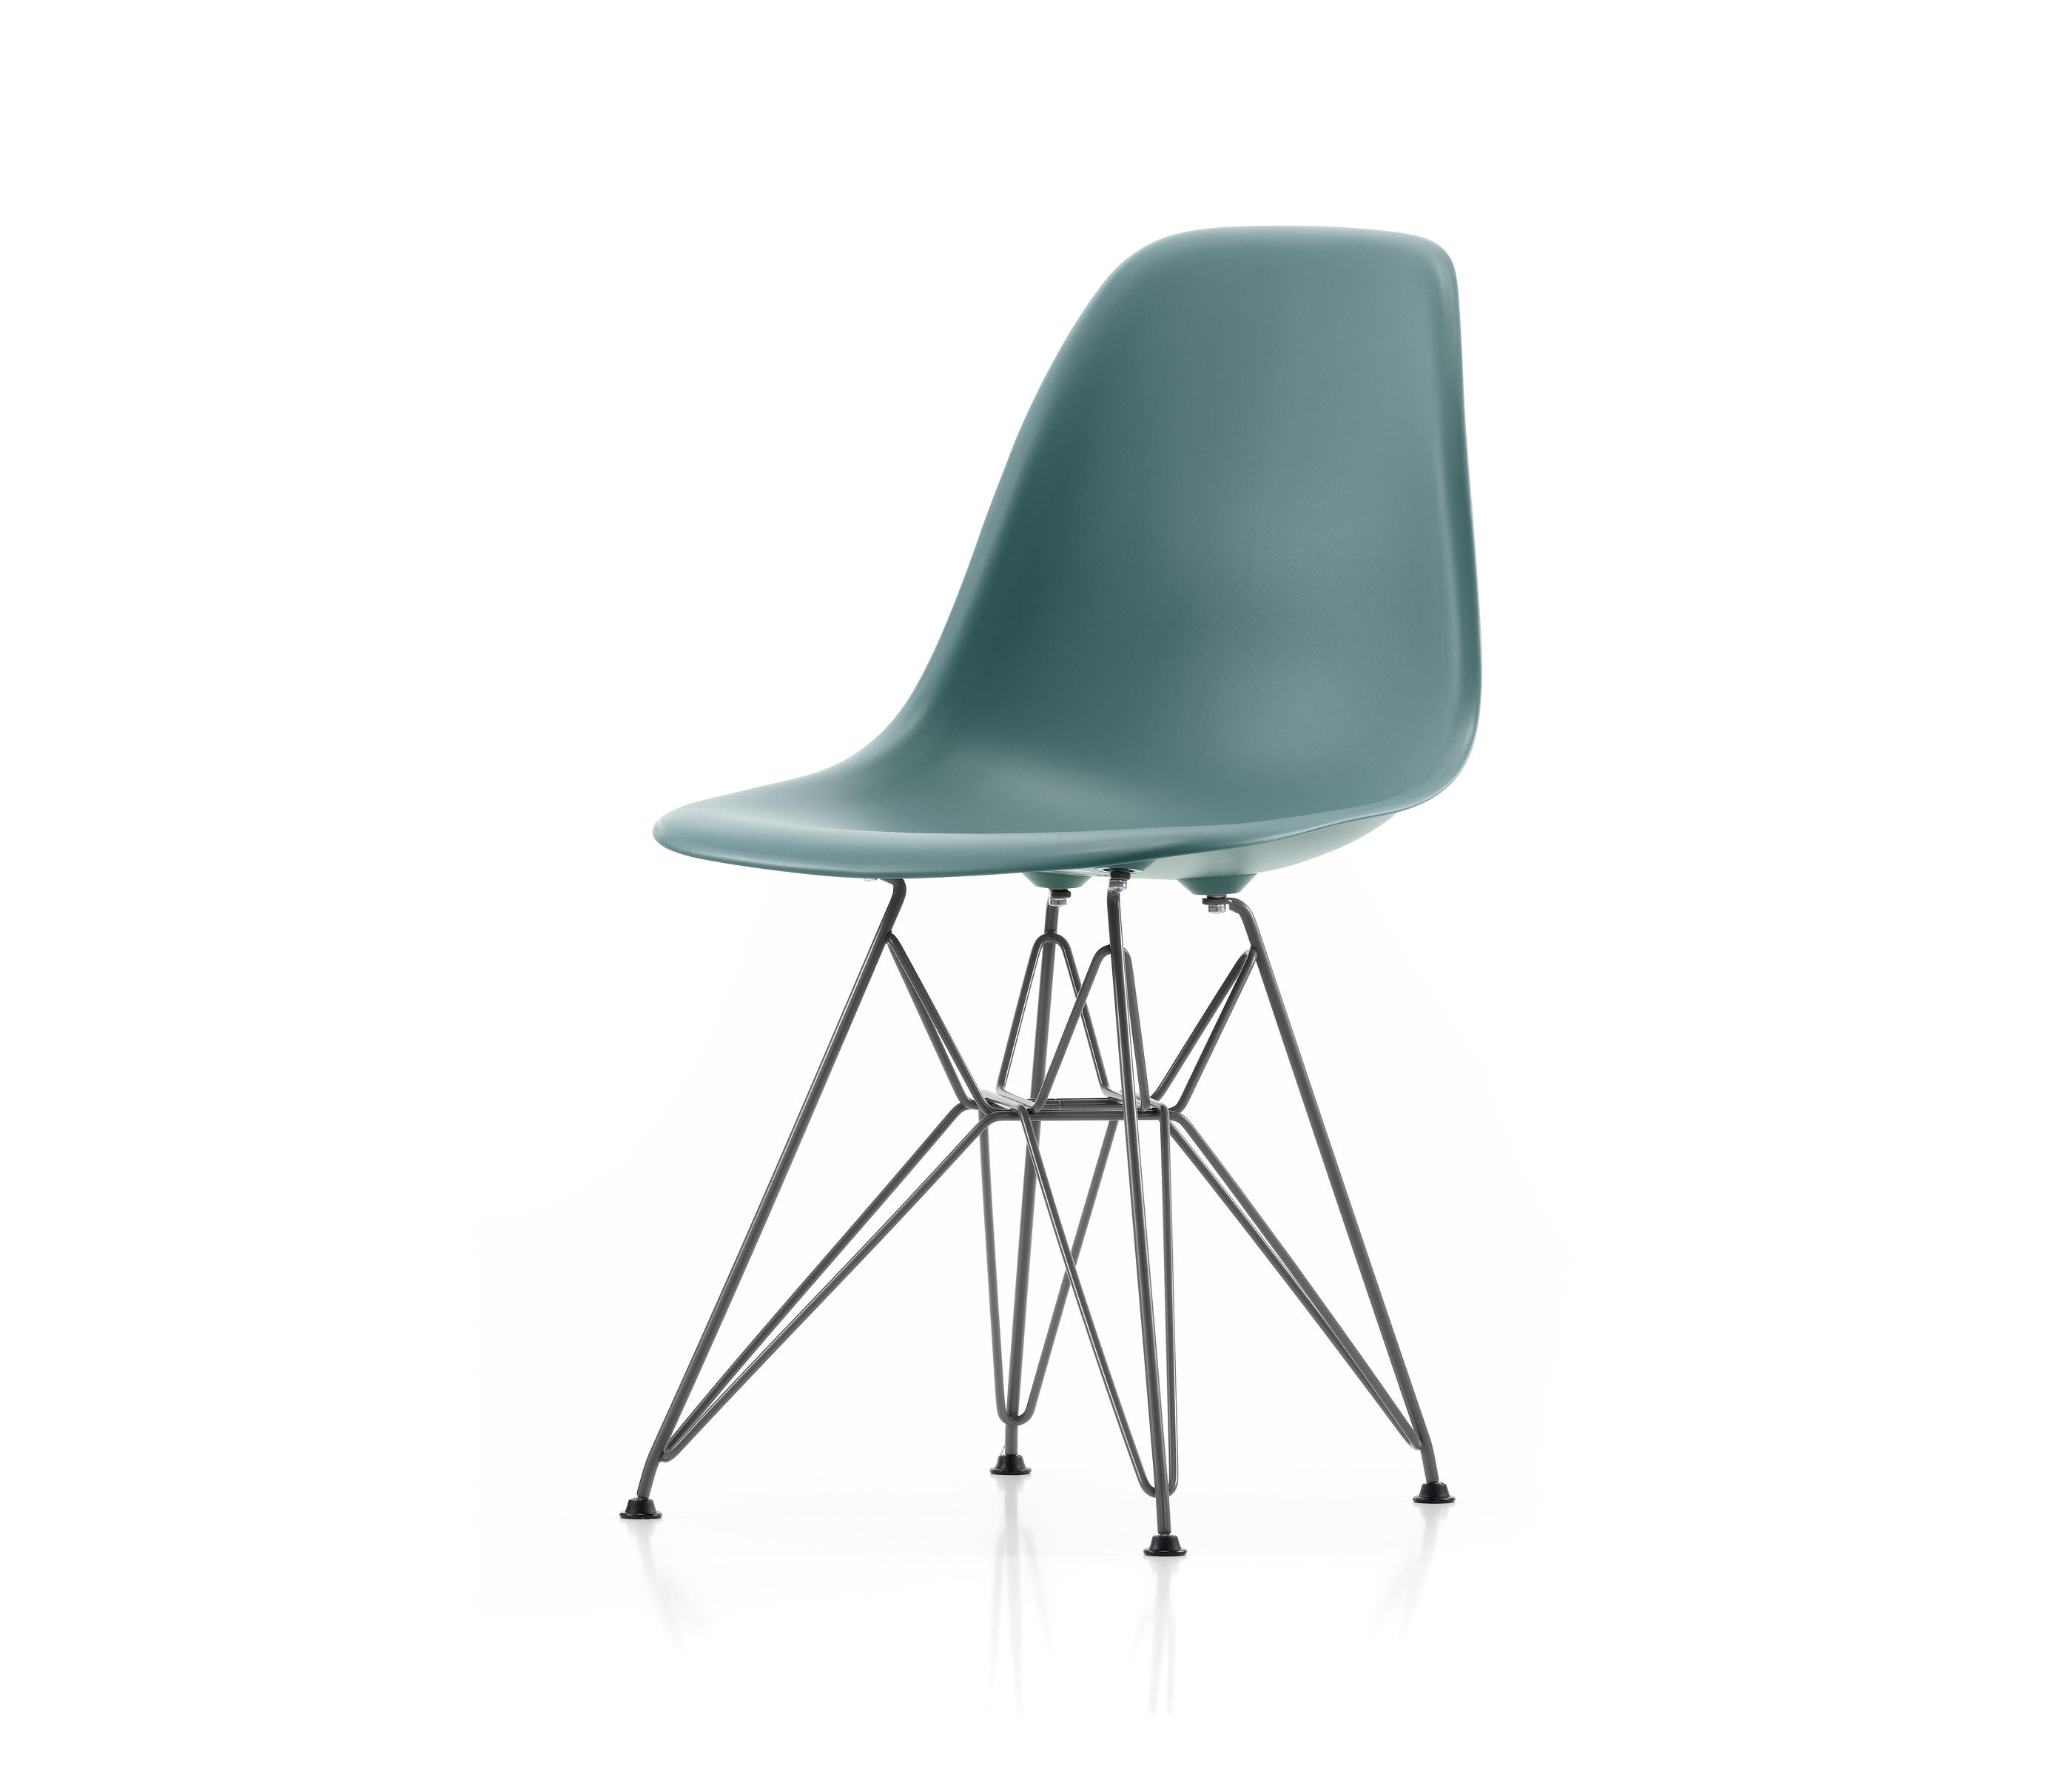 vitra chair the vitra eames dsw plastic upholstered chair